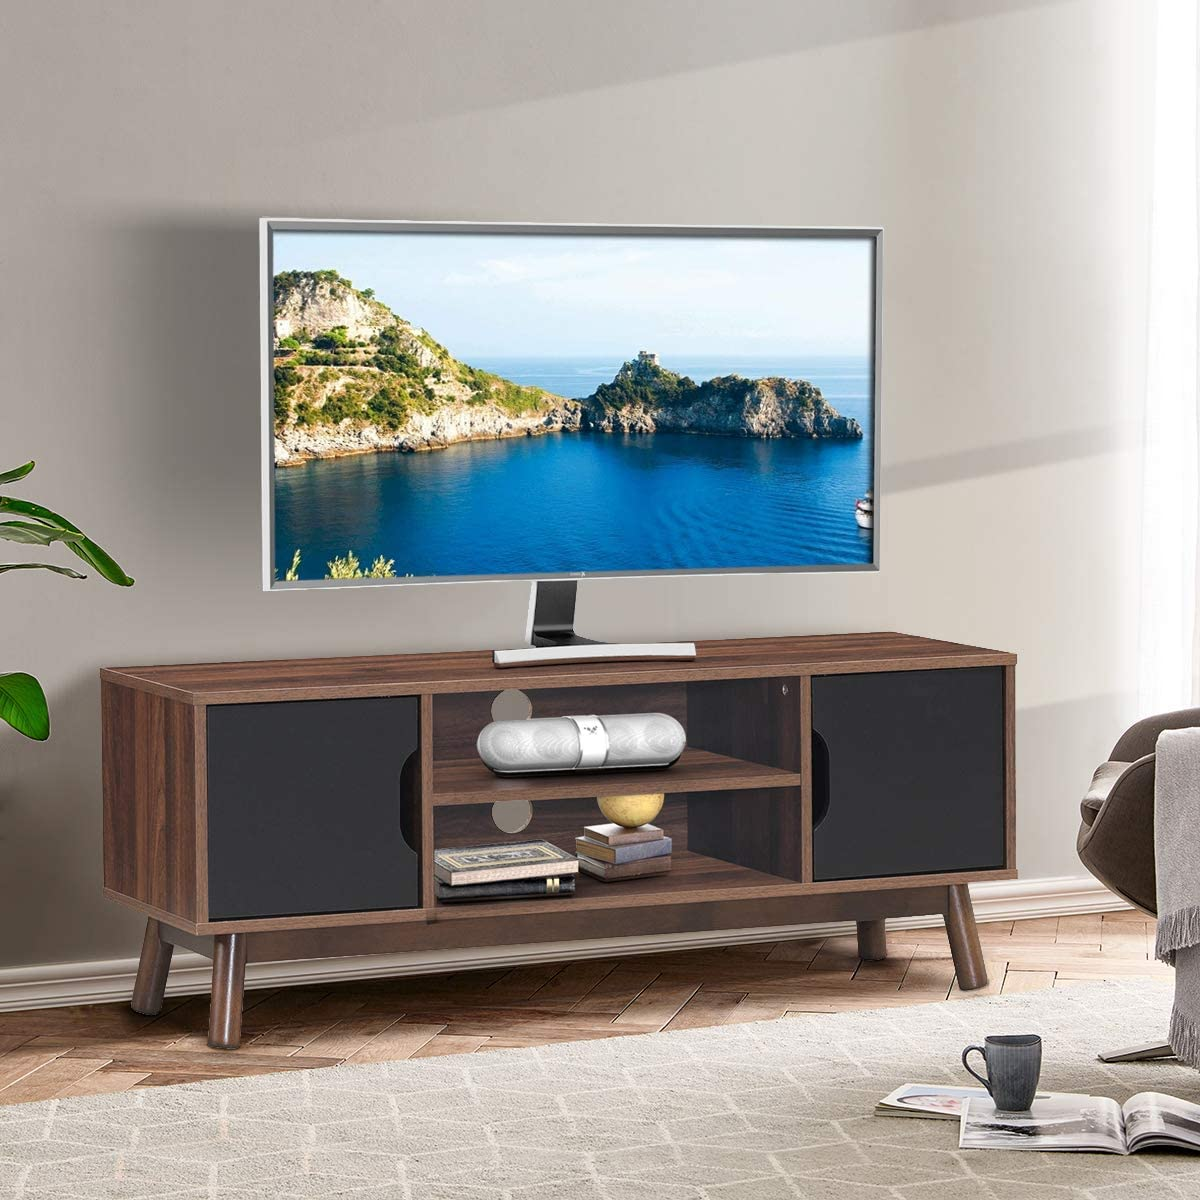 Tangkula TV Stand, TV Console for TVs up to 50 , Media Console with Cabinet Doors Open Storage Shelves, Wooden TV Stand Storage Console Table for Living Room Black